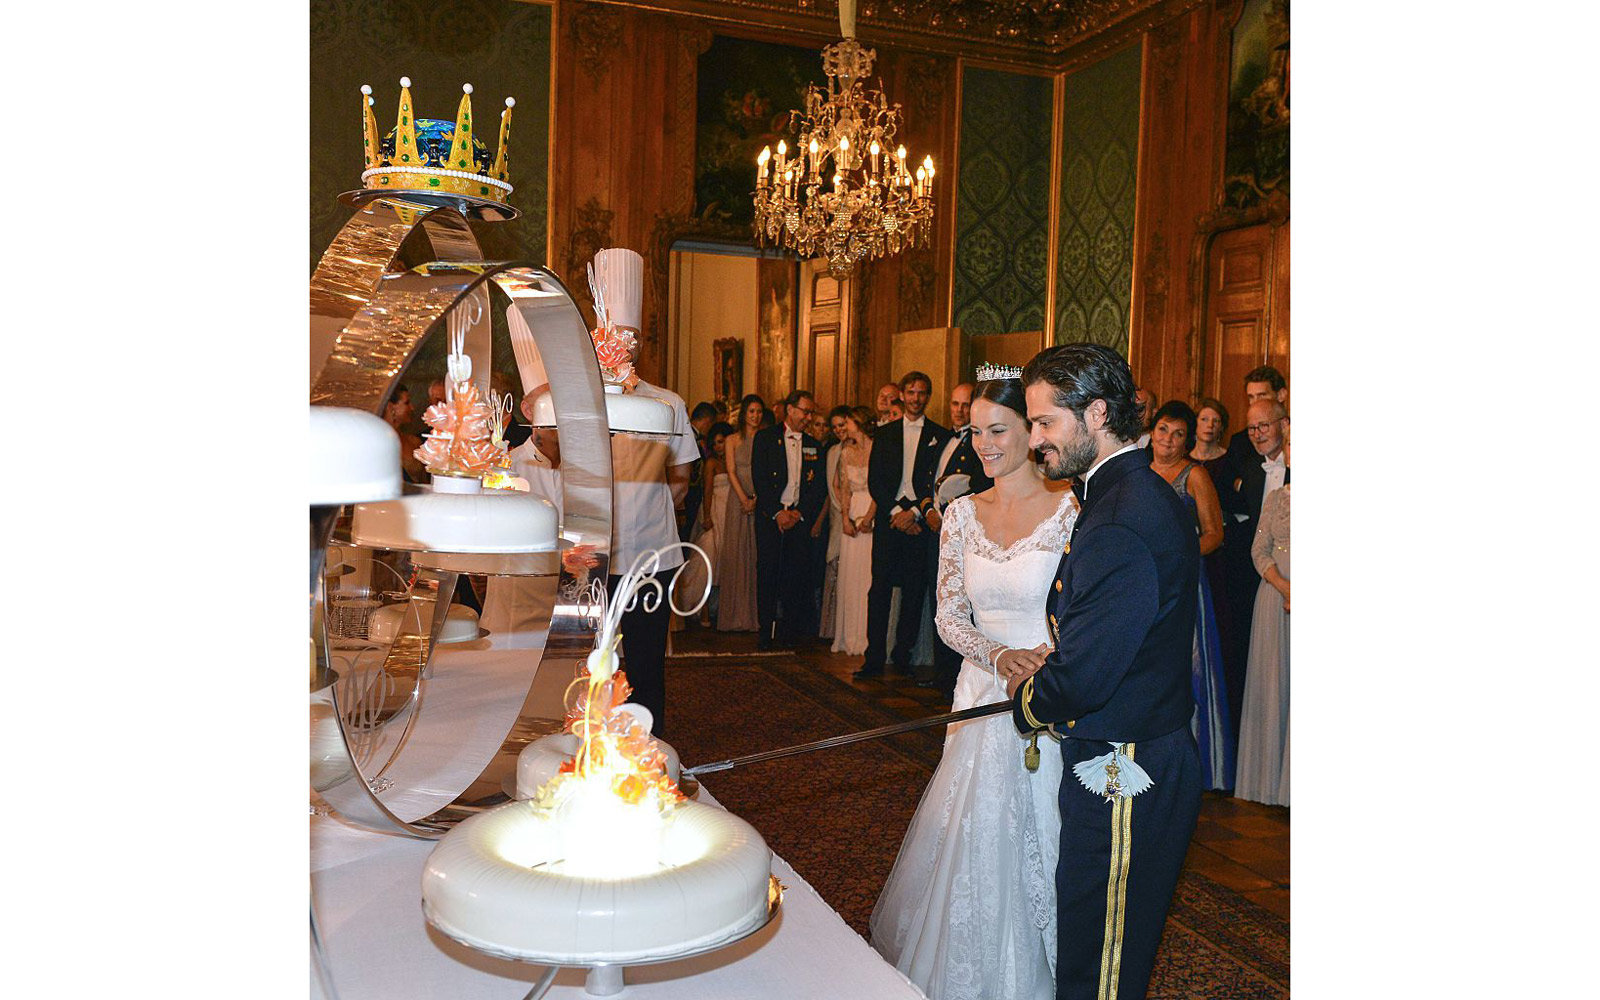 Princess Sofia and Prince Carl Philip cut the cake during their wedding at the Royal Palace in Stockholm, Sweden